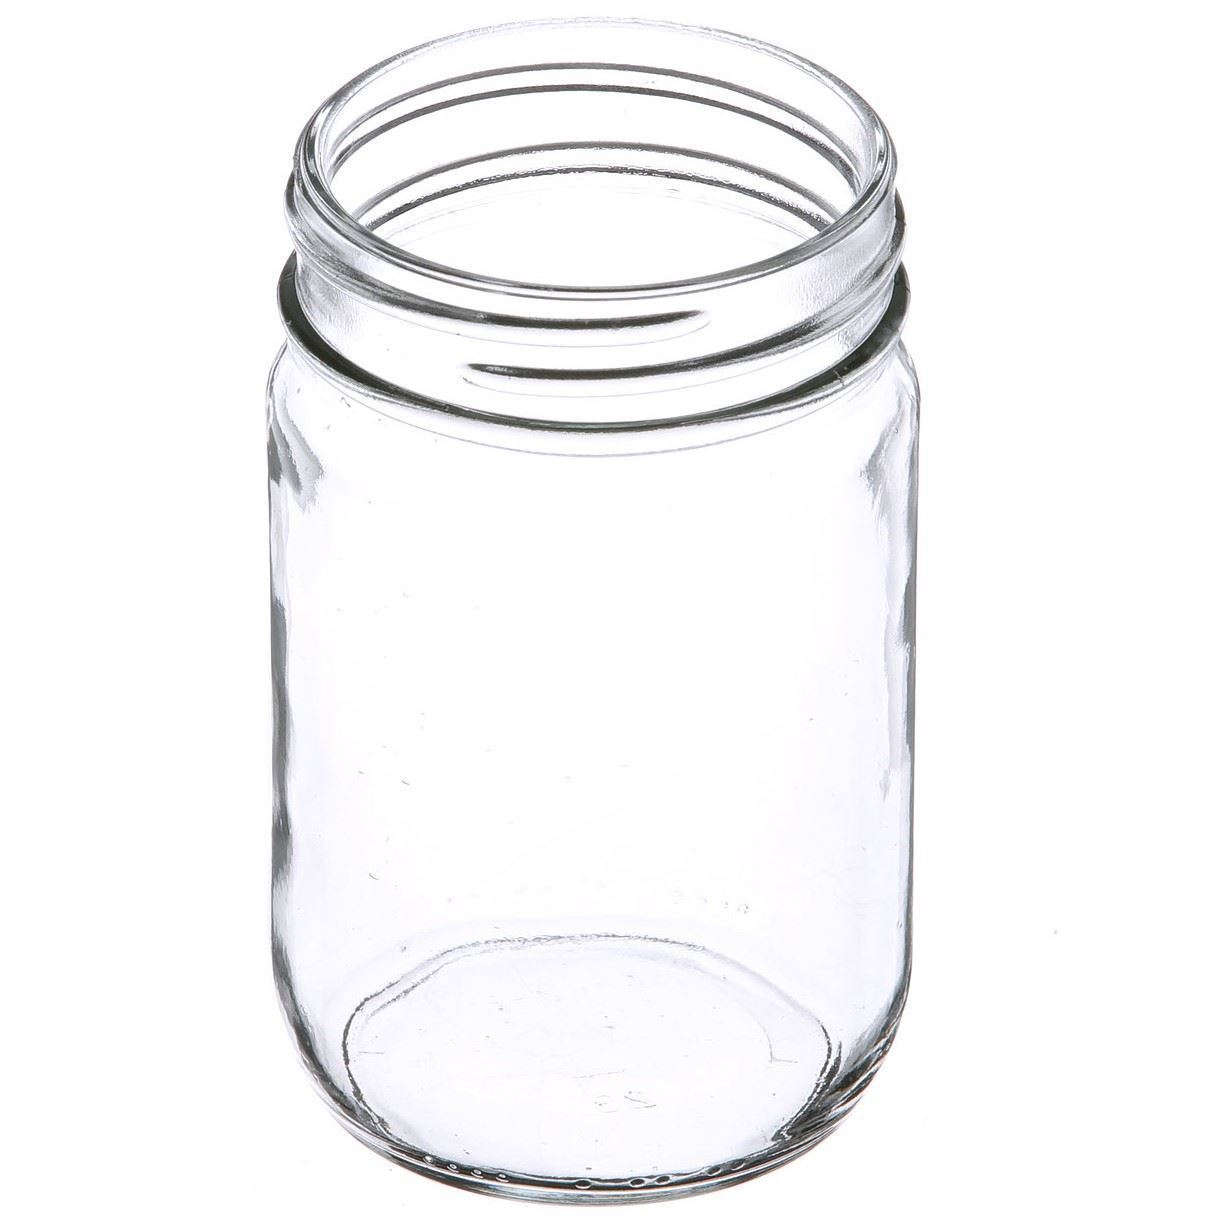 Canning Jar Drawing